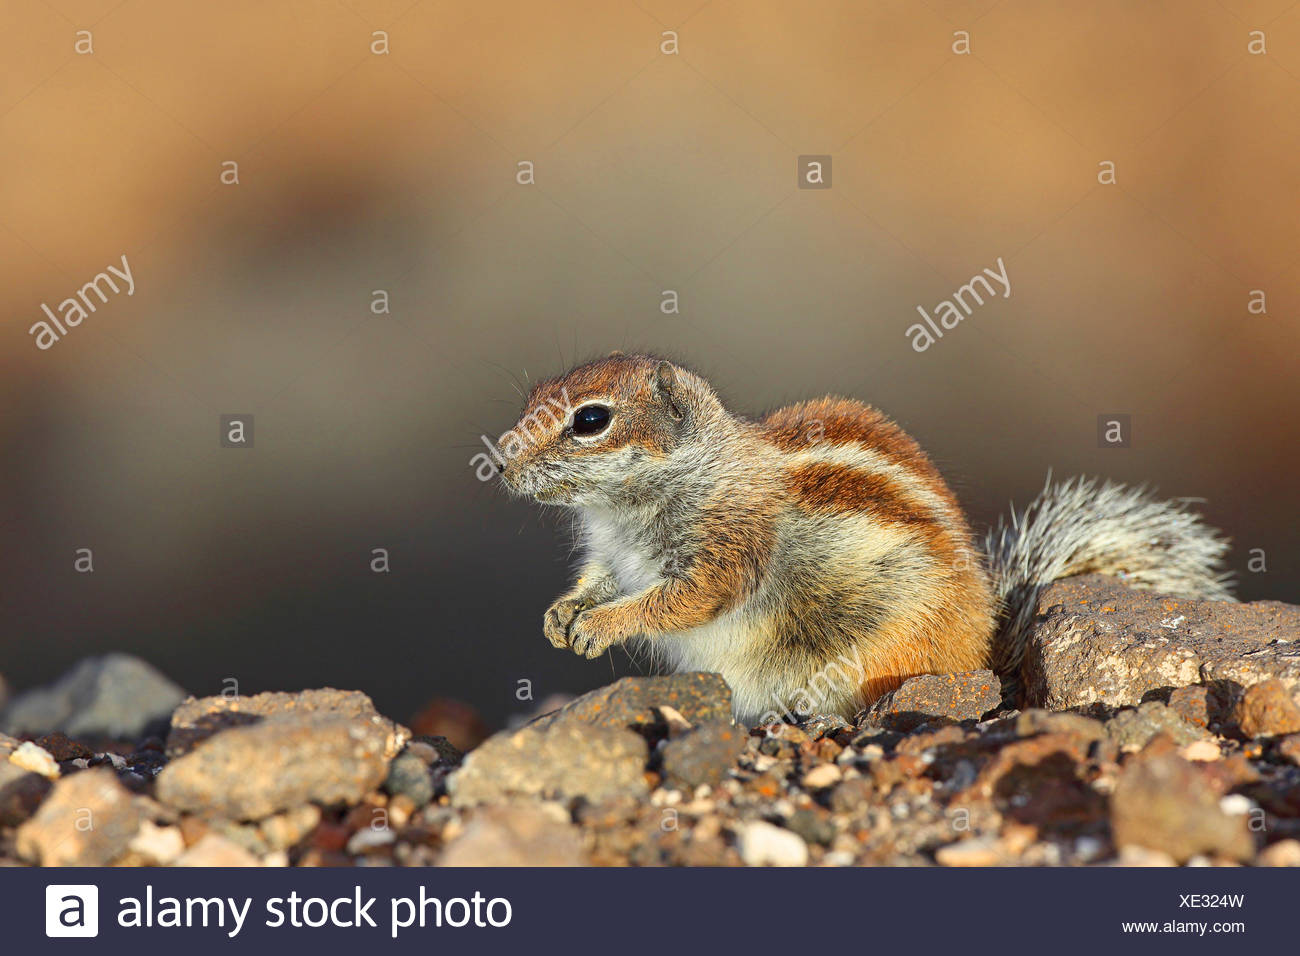 barbary ground squirrel, North African ground squirrel (Atlantoxerus getulus), sits on a stone, Canary Islands, Fuerteventura - Stock Image